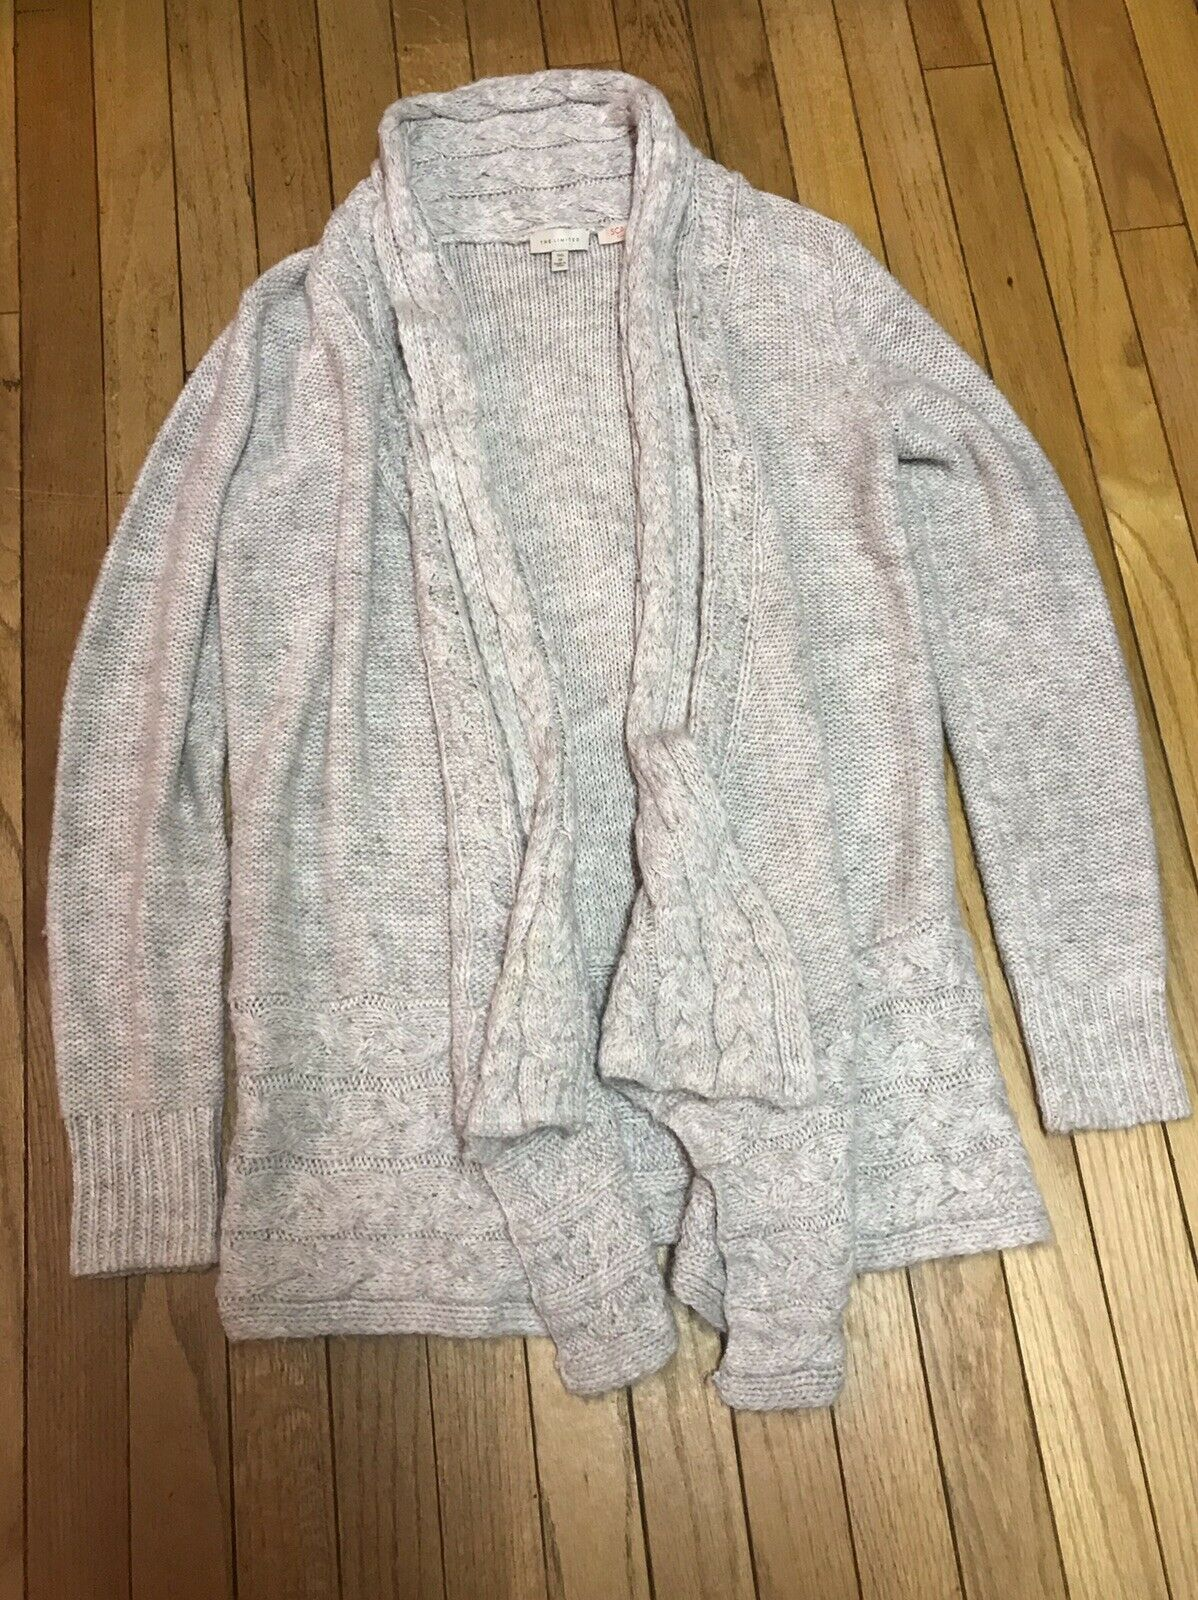 The Limited M L Tunic Wool Blend Beige Cardigan Sweater Very Soft TALL EUC